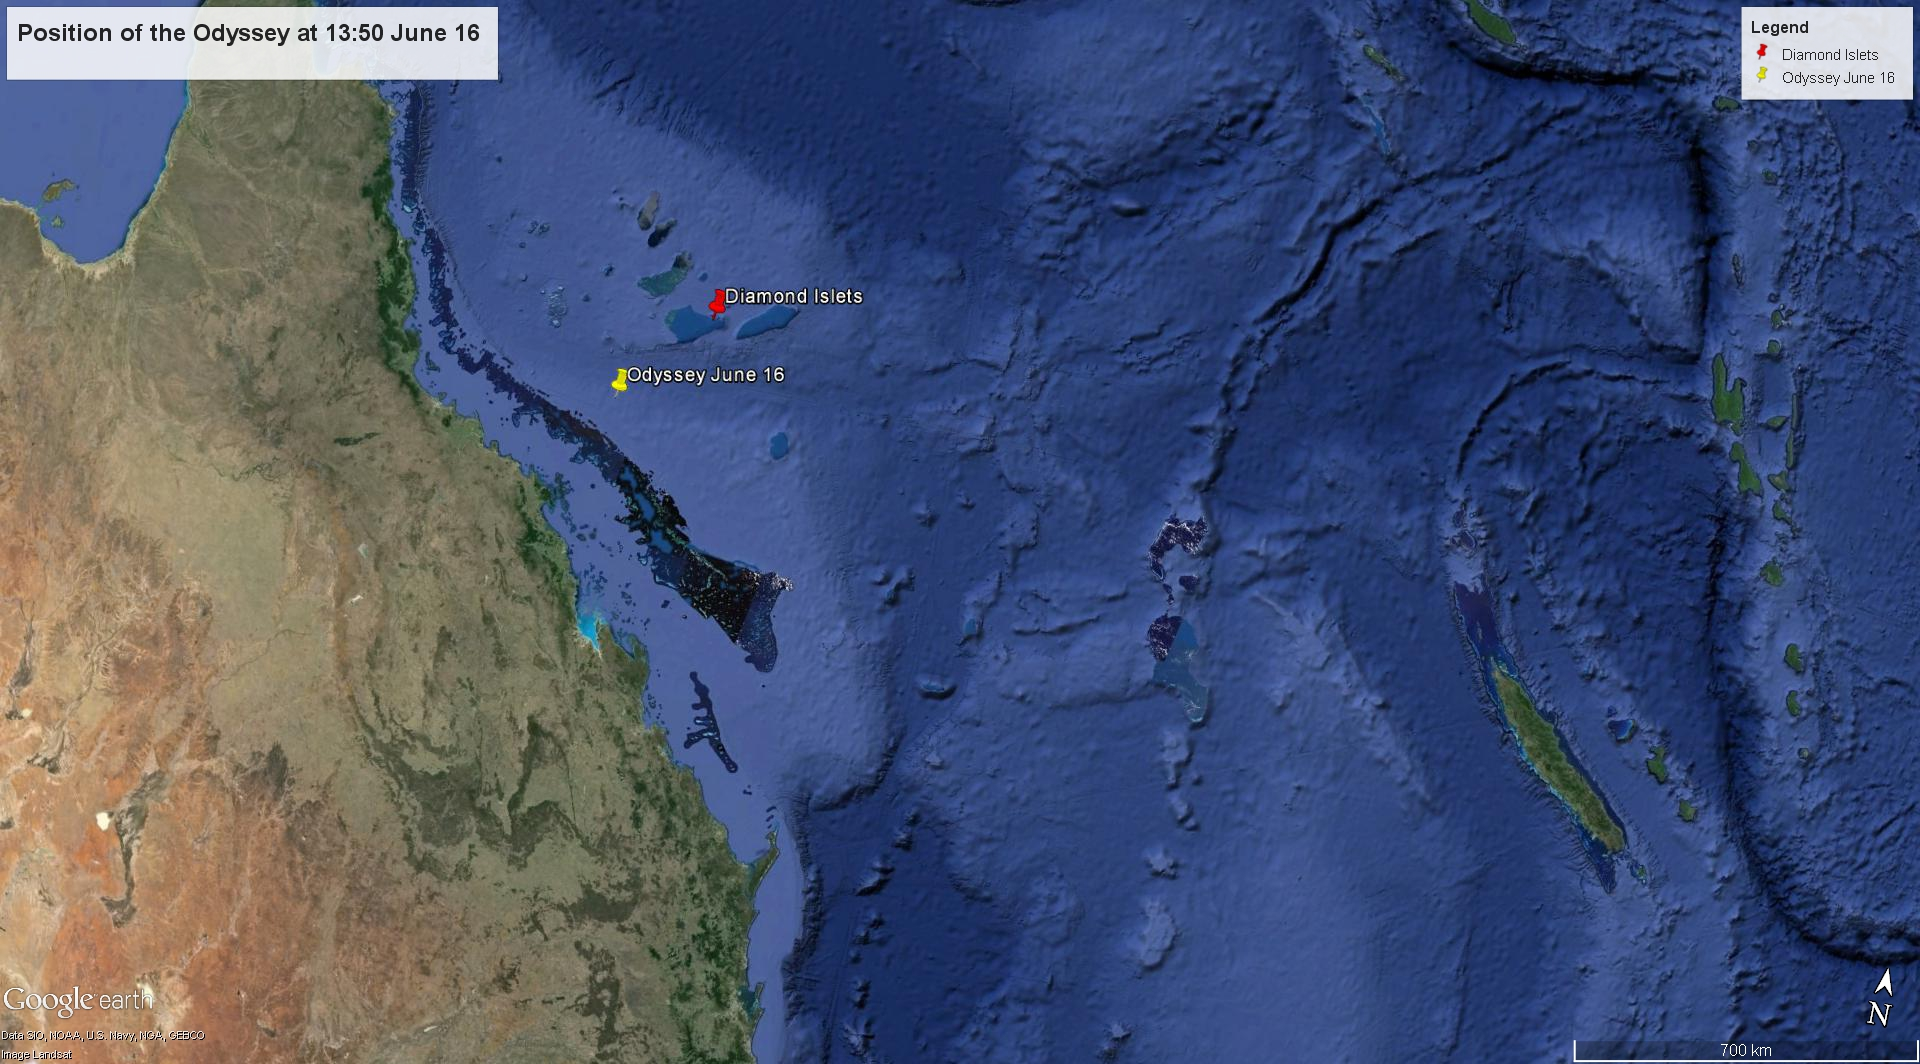 The position of the Odyssey on Thursday June 16 - Google Earth view. Note New Caledonia at far left.